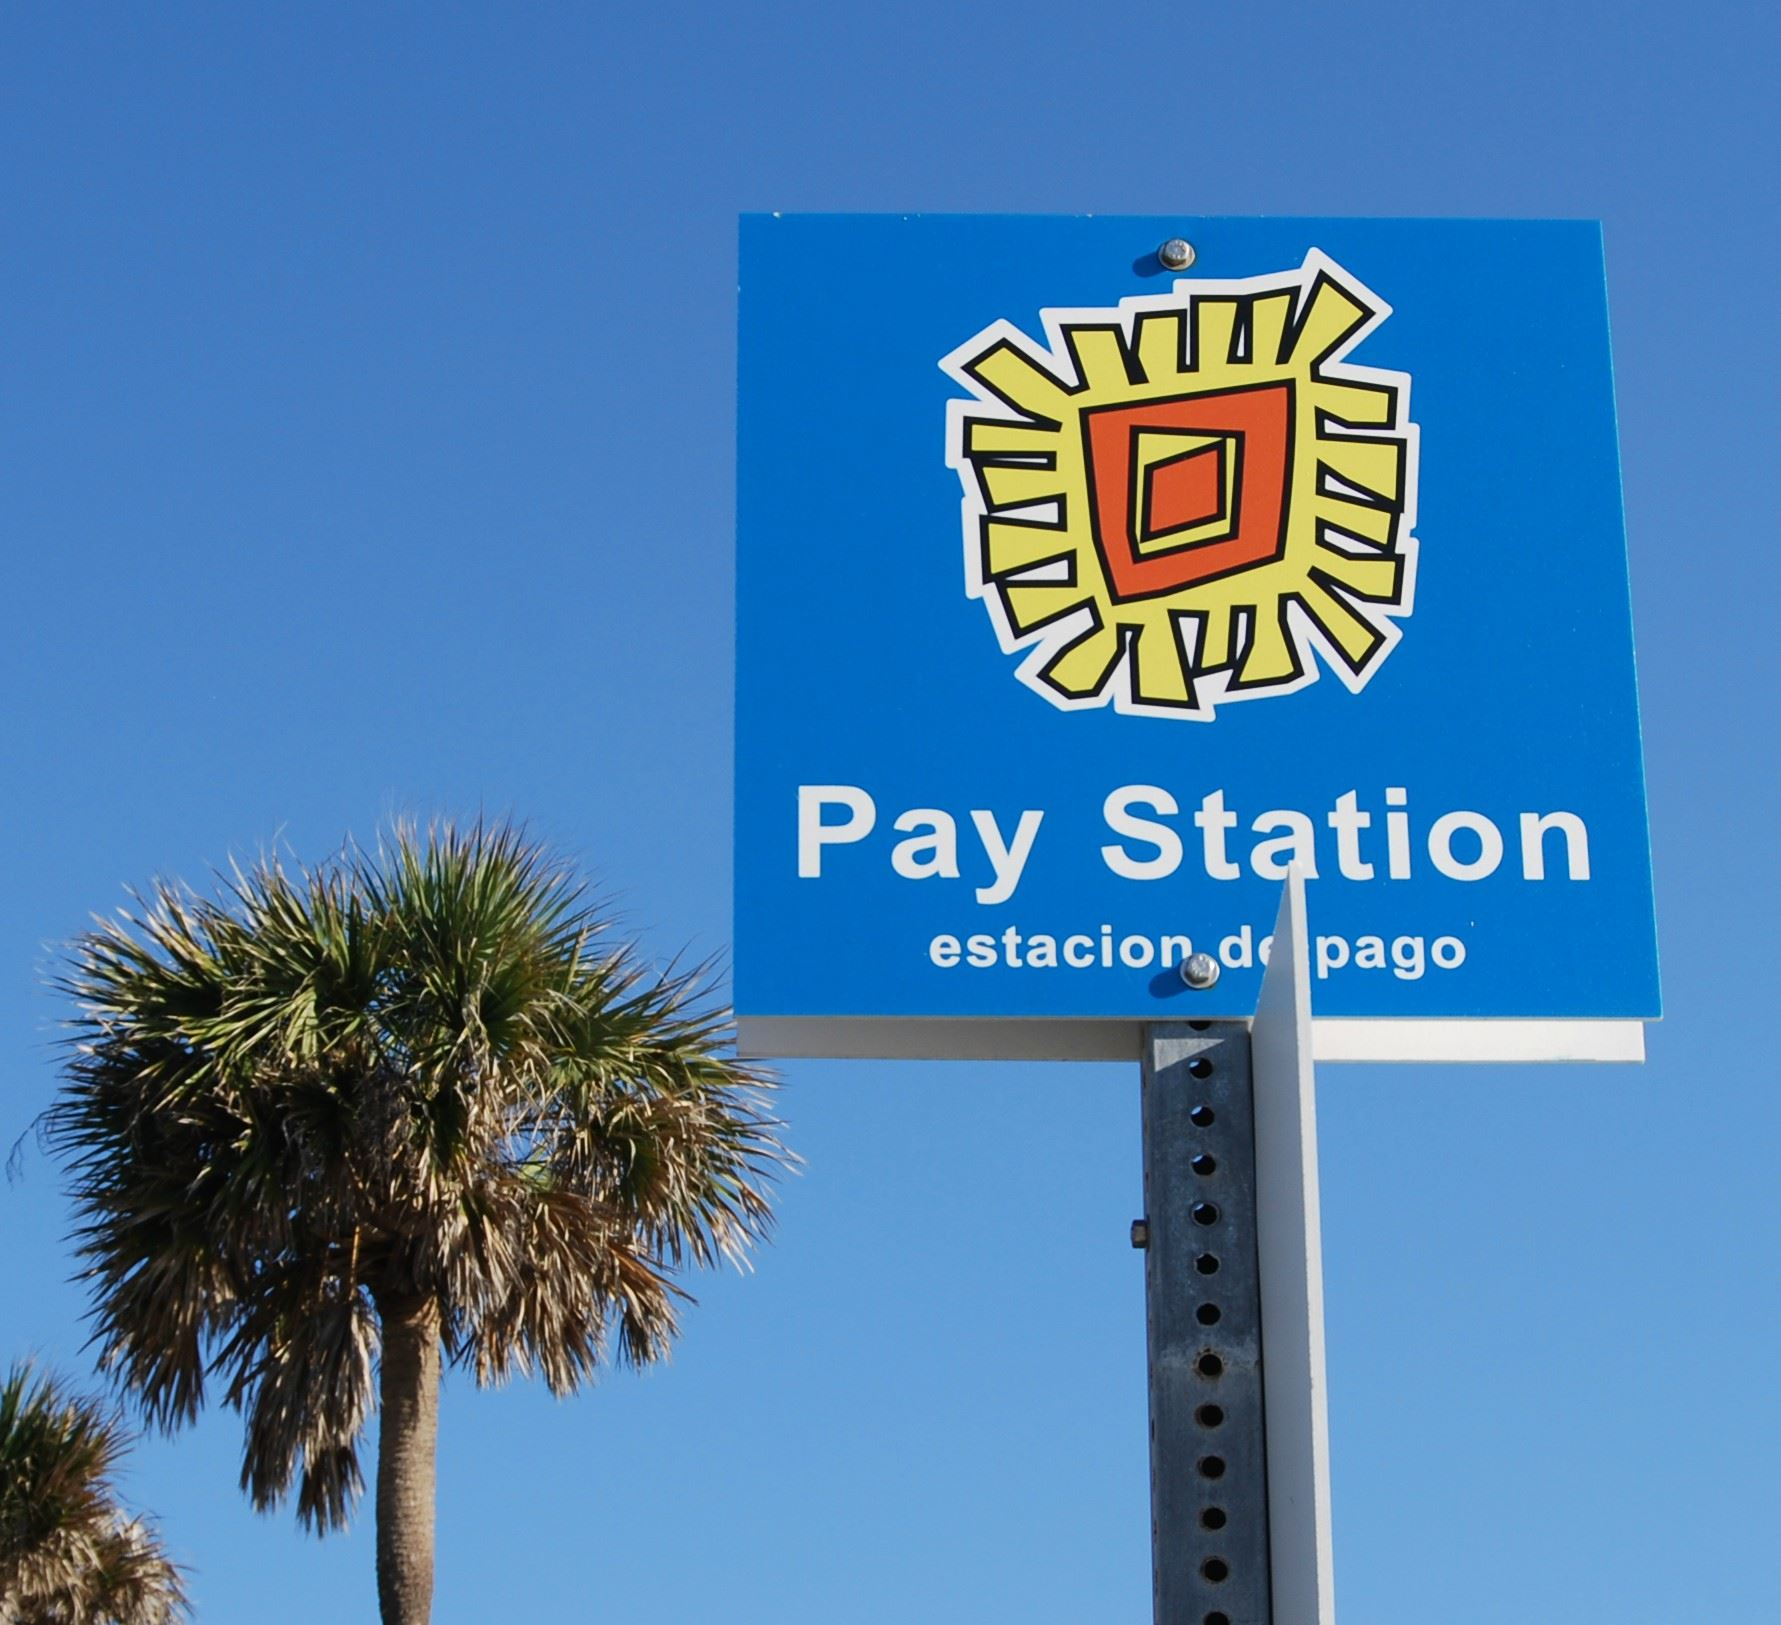 Pay Station Sign